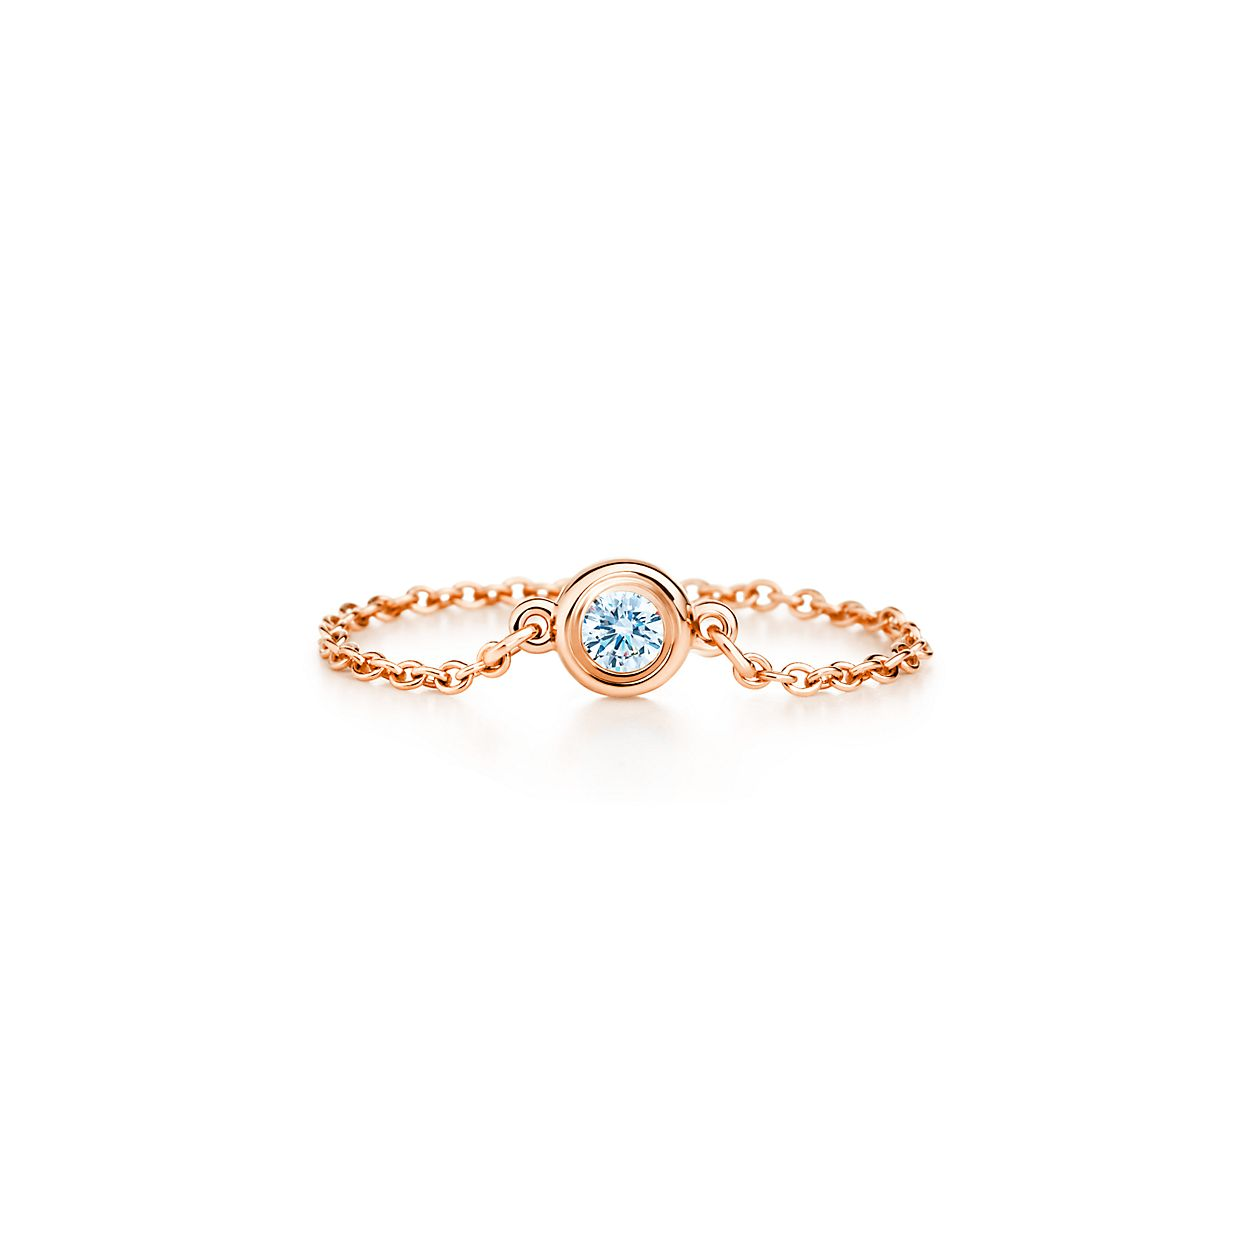 Elsa Peretti Diamonds by the Yard ring in 18k rose gold - Size 4 Tiffany & Co. XX1cjC6062